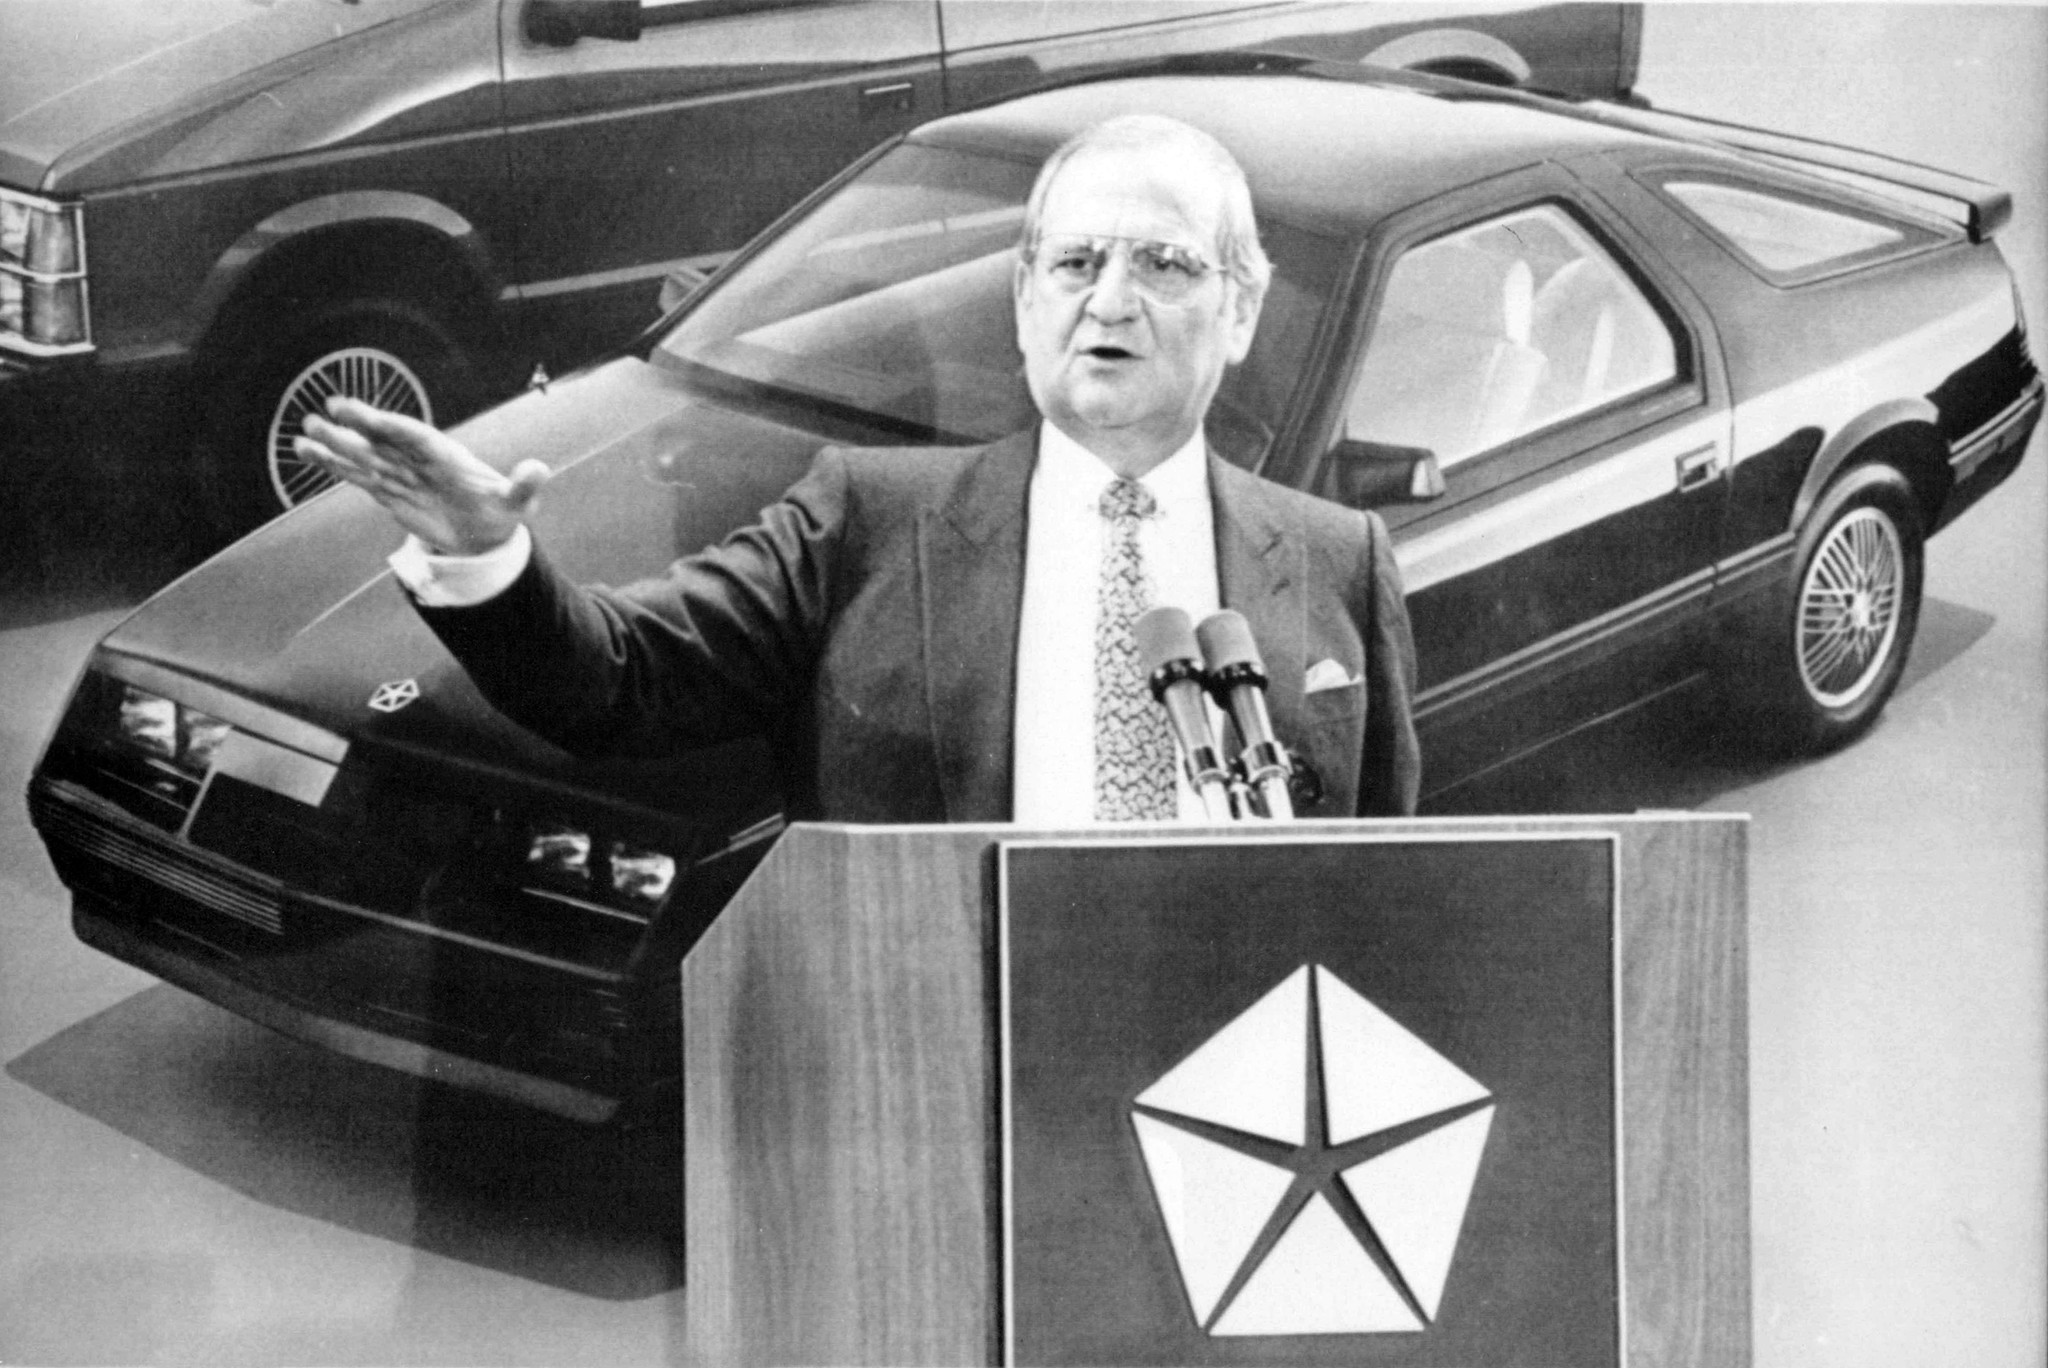 Lee Iacocca Mustang >> PICTURES: Lee Iacocca through the years - The Morning Call